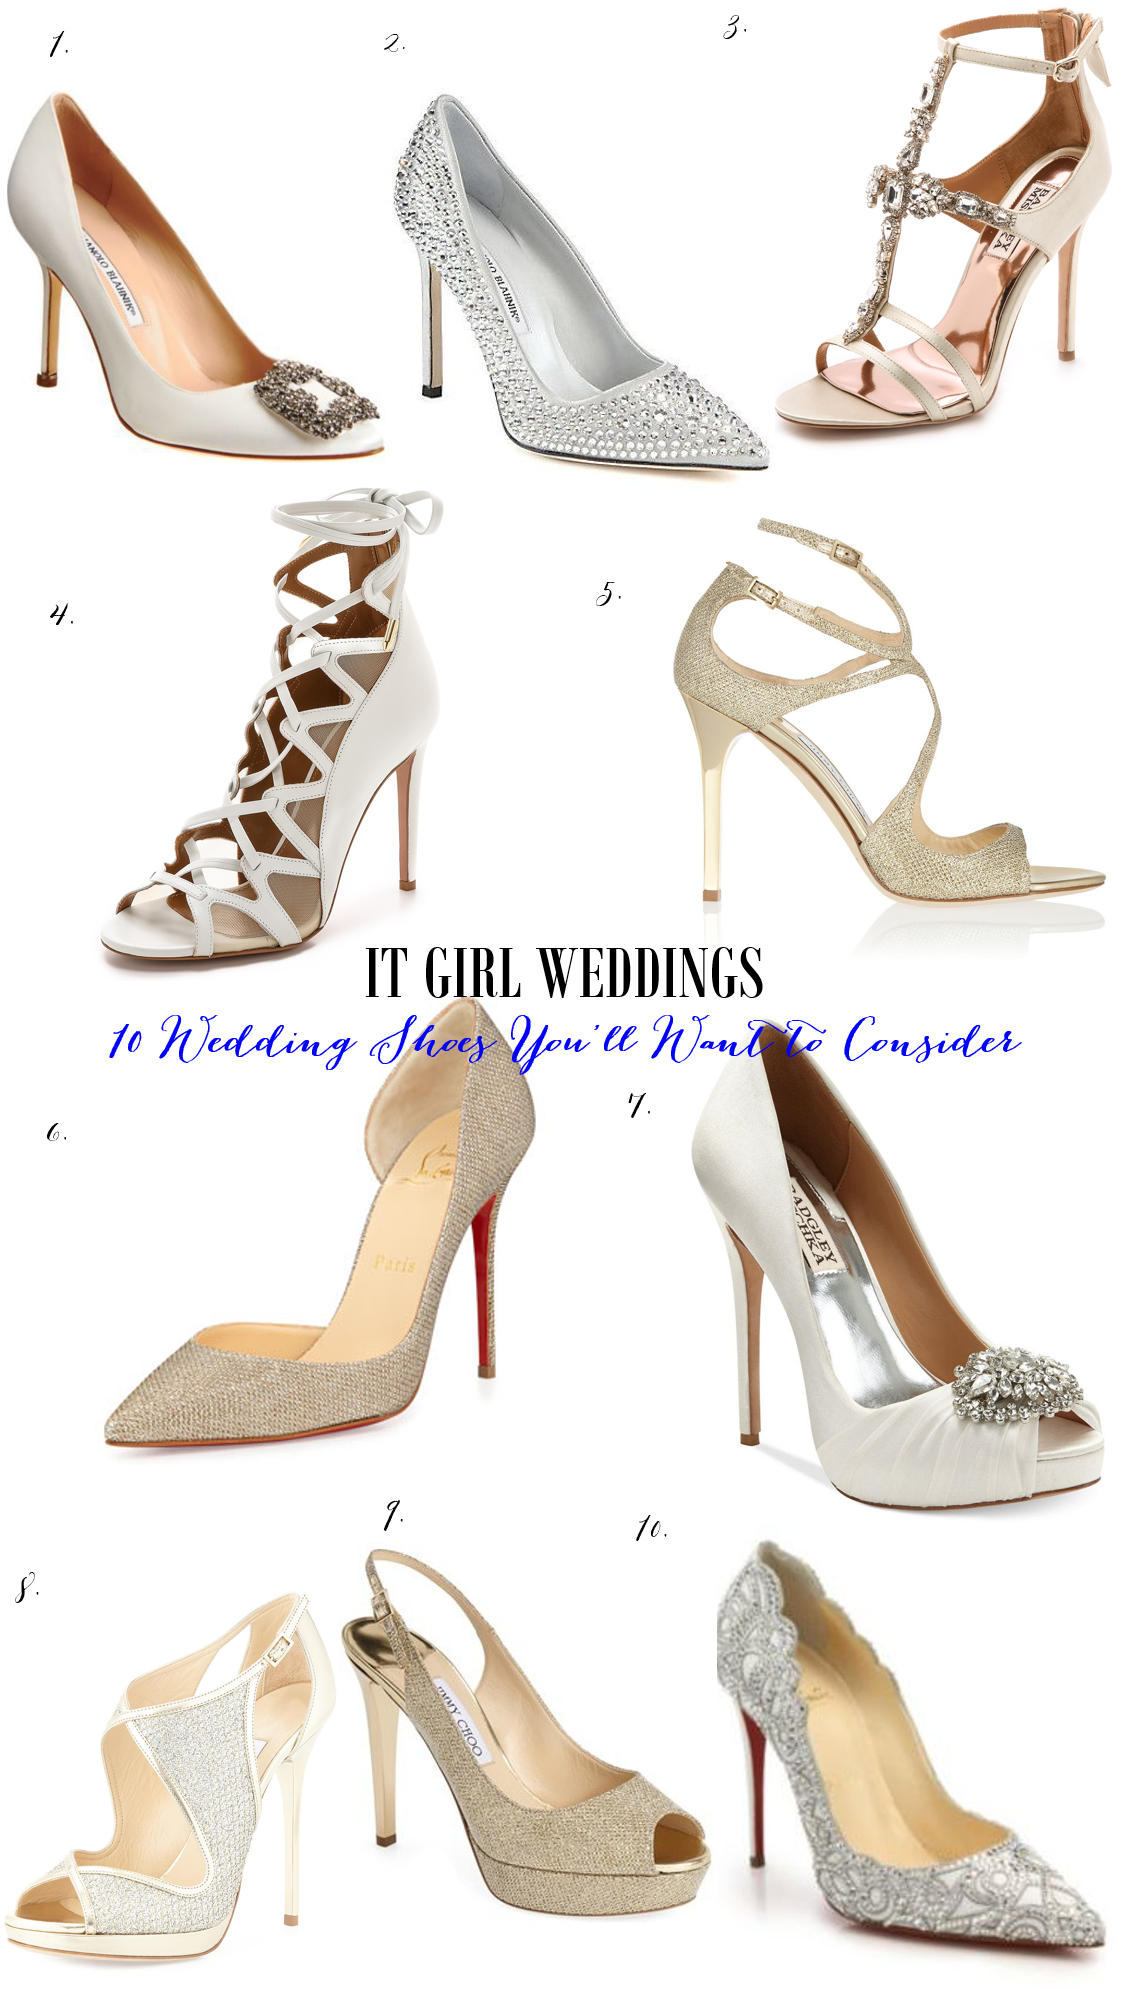 10 wedding shoes you'll want to consider before your wedding, new wedding shoe styles